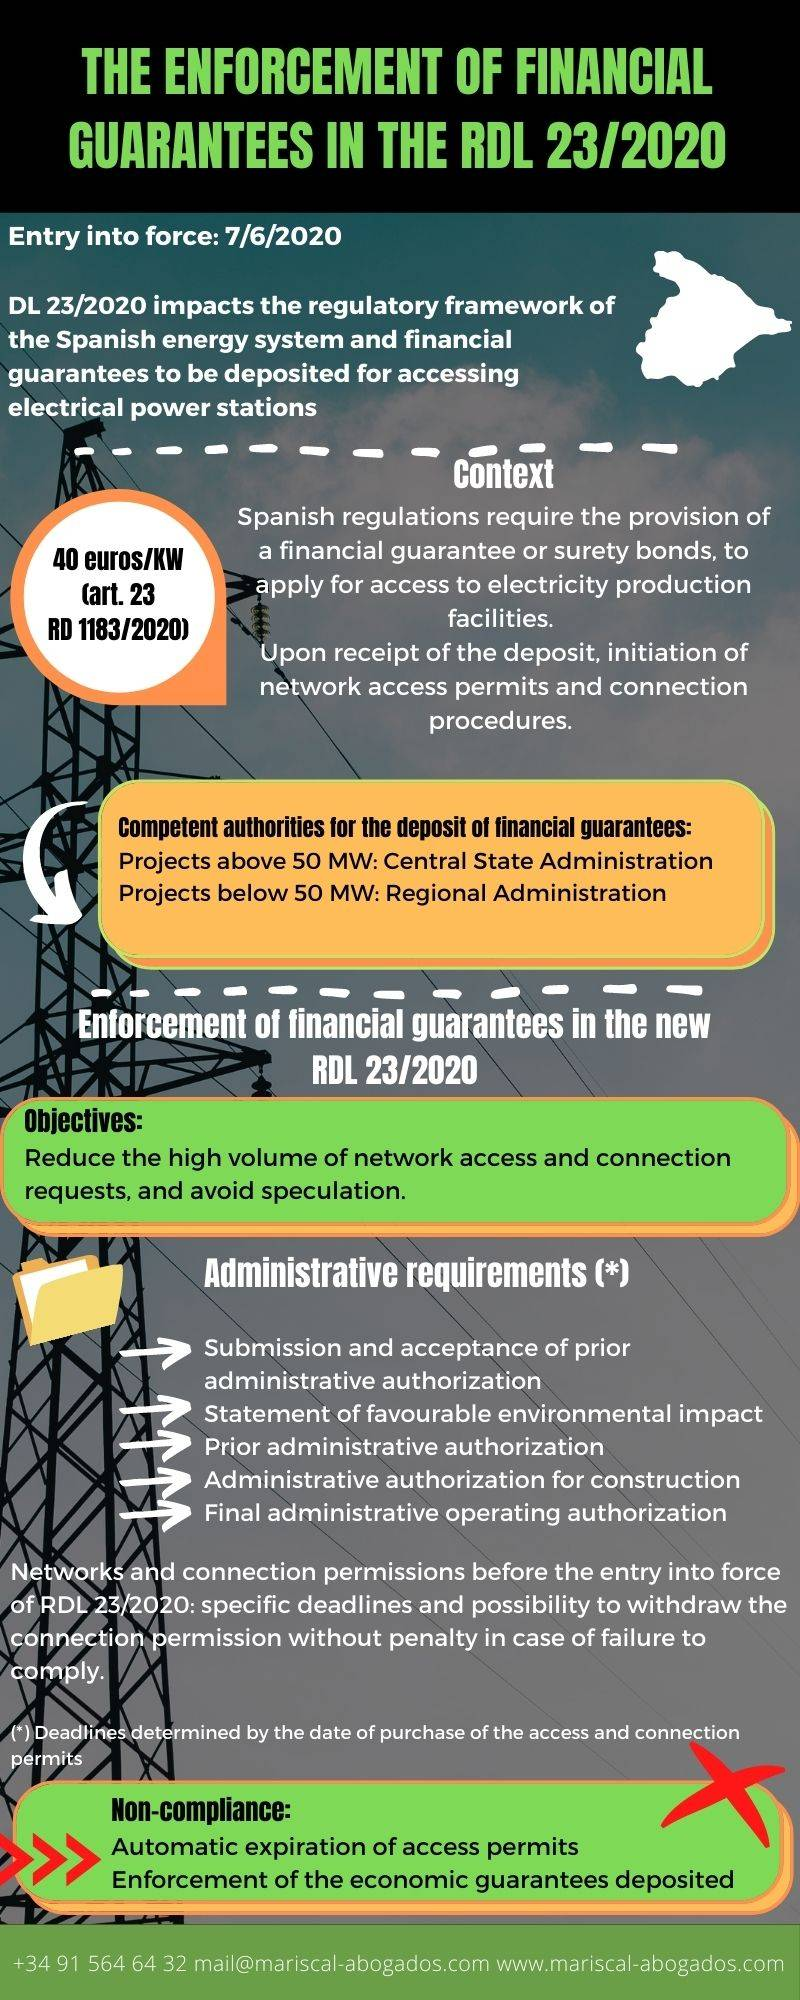 The enforcement of financial guarantees in photovoltaic projects in Spain